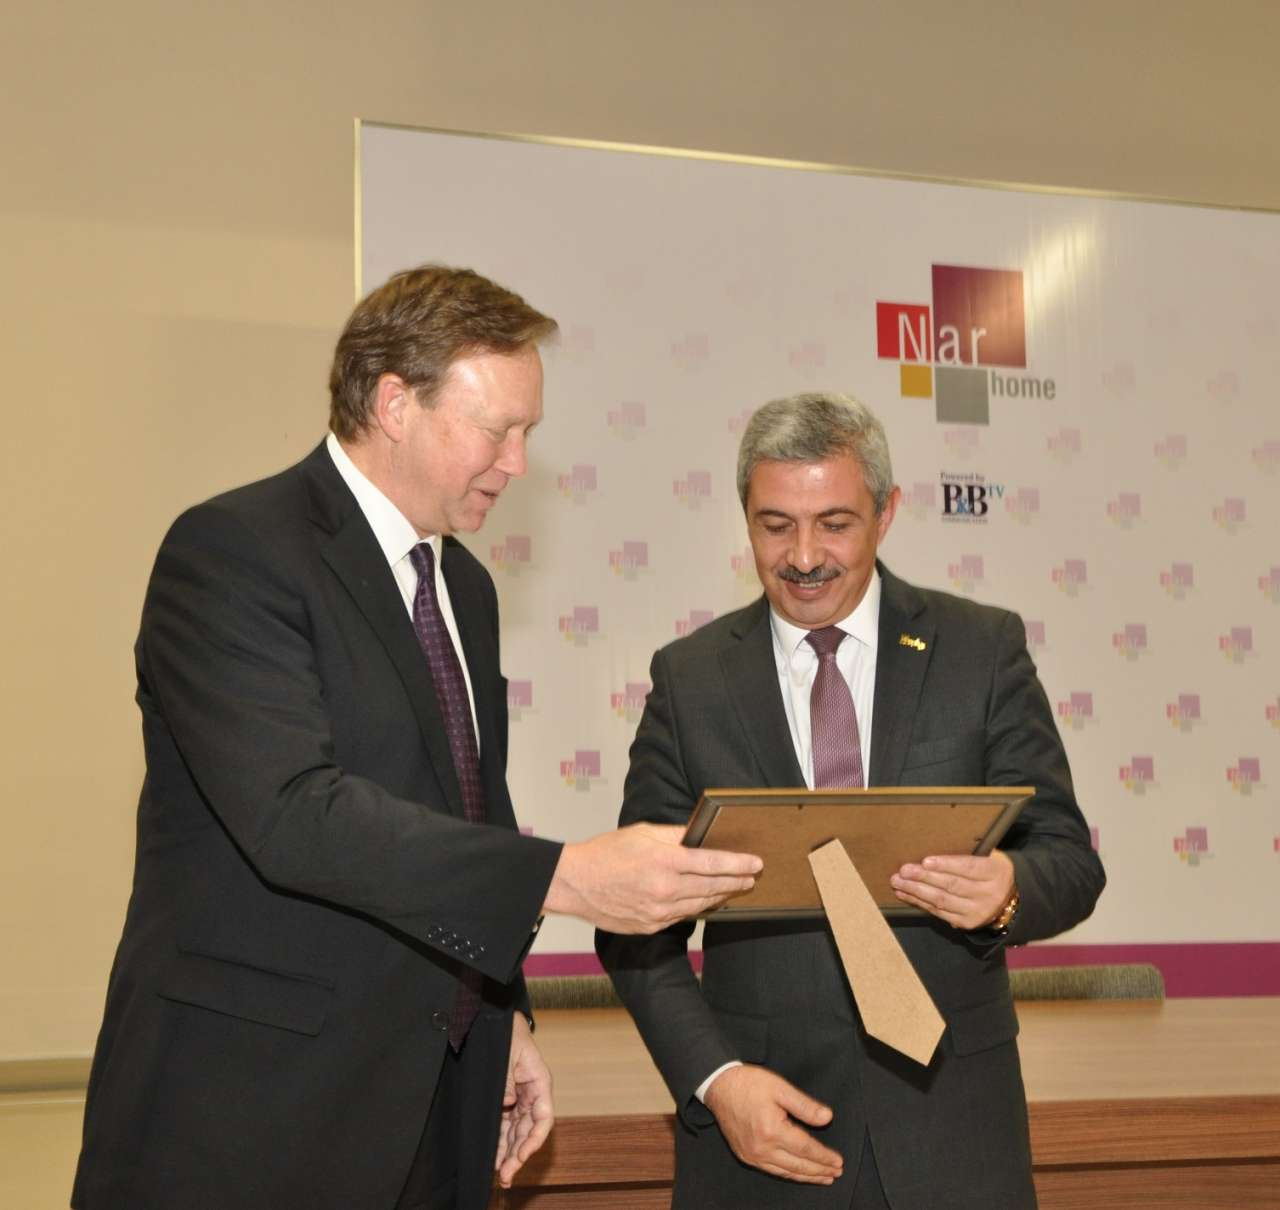 Nar Mobile launches new product in Nakhchivan (PHOTO)